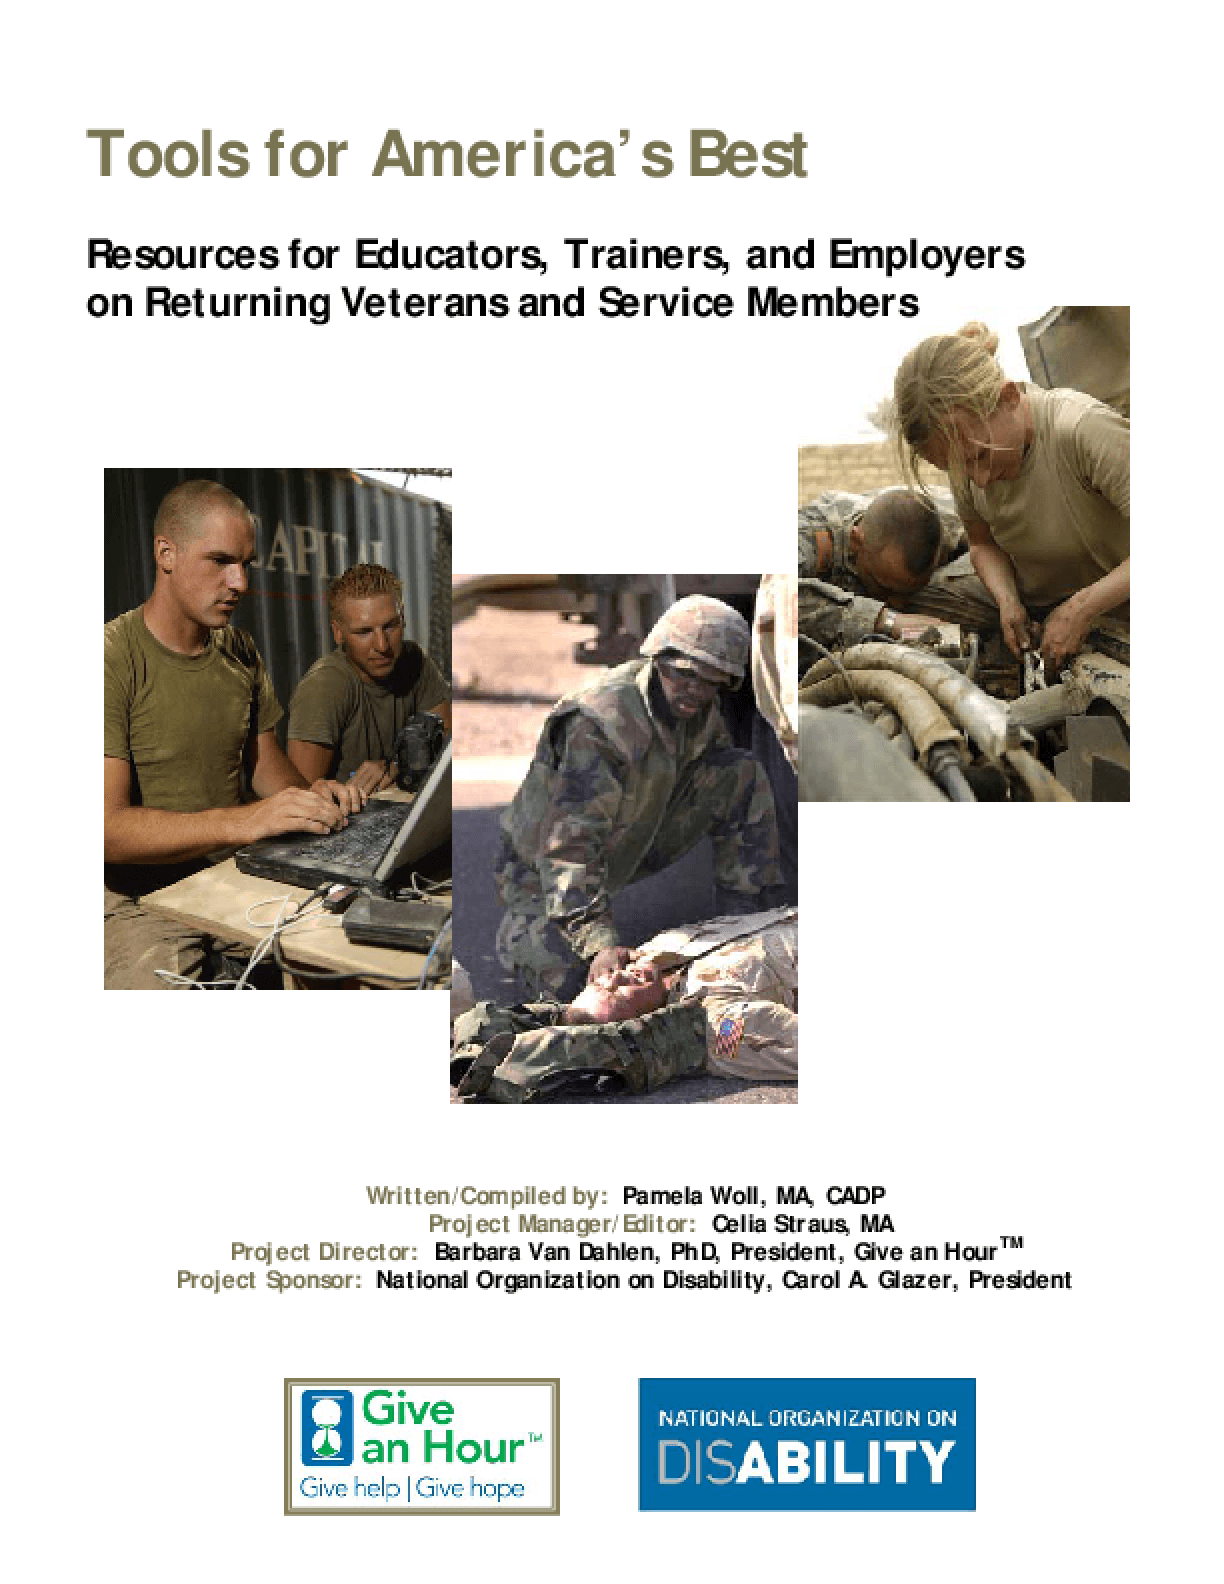 Tools for America's Best: Resources for Educators, Trainers, and Employers on Returning Veterans and Service Members